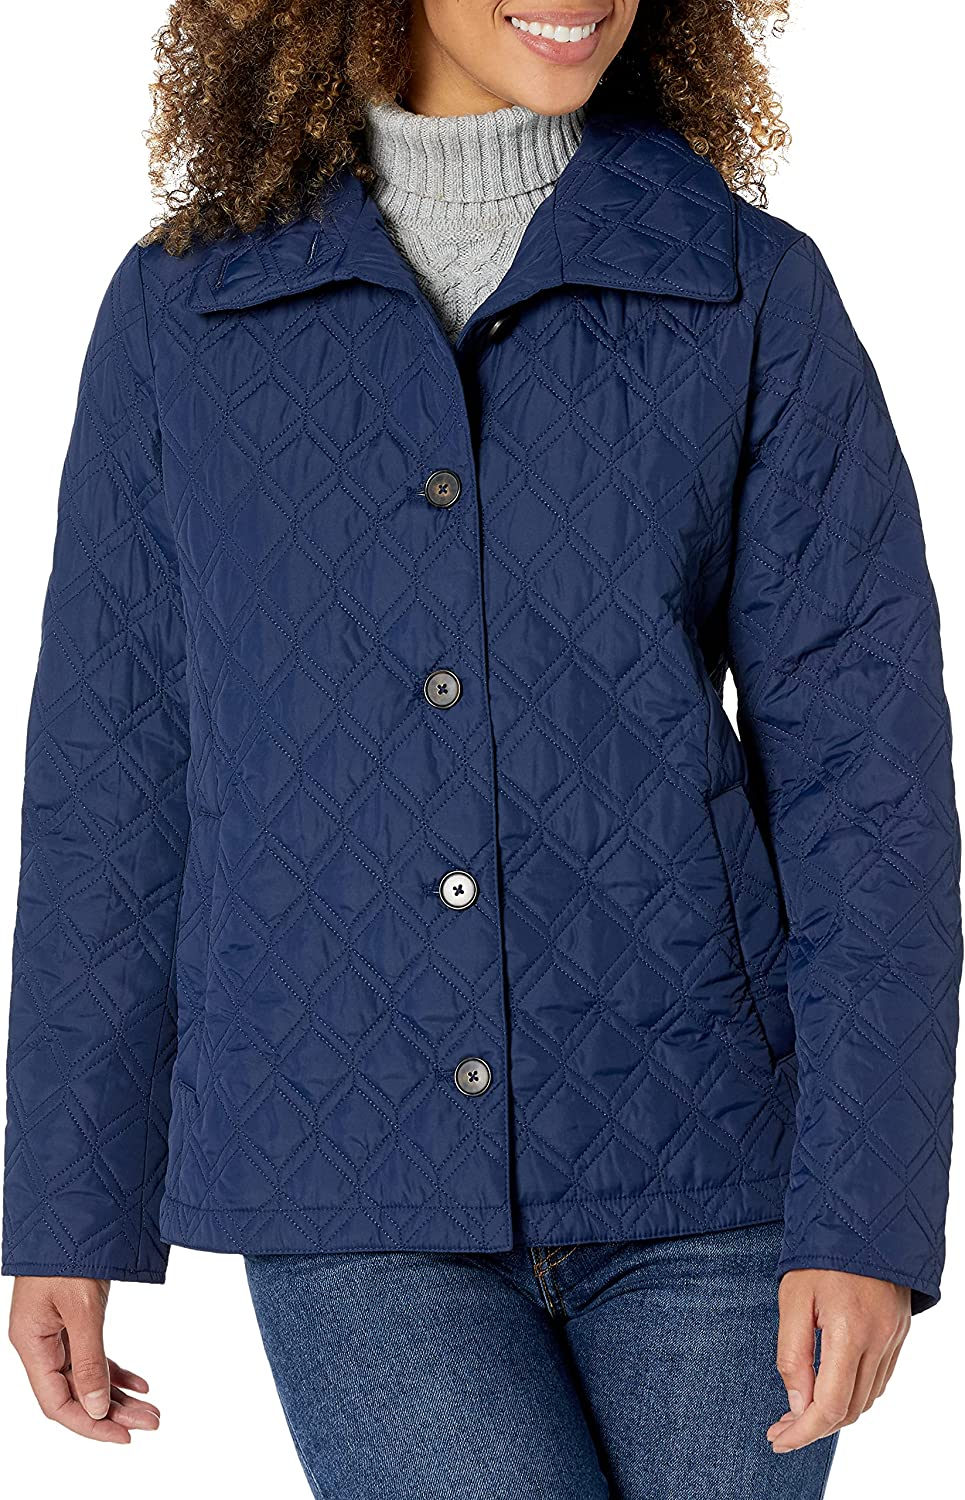 Jones overseas New York Women's Jacket Quilted Midweight Shipping Free Hooded